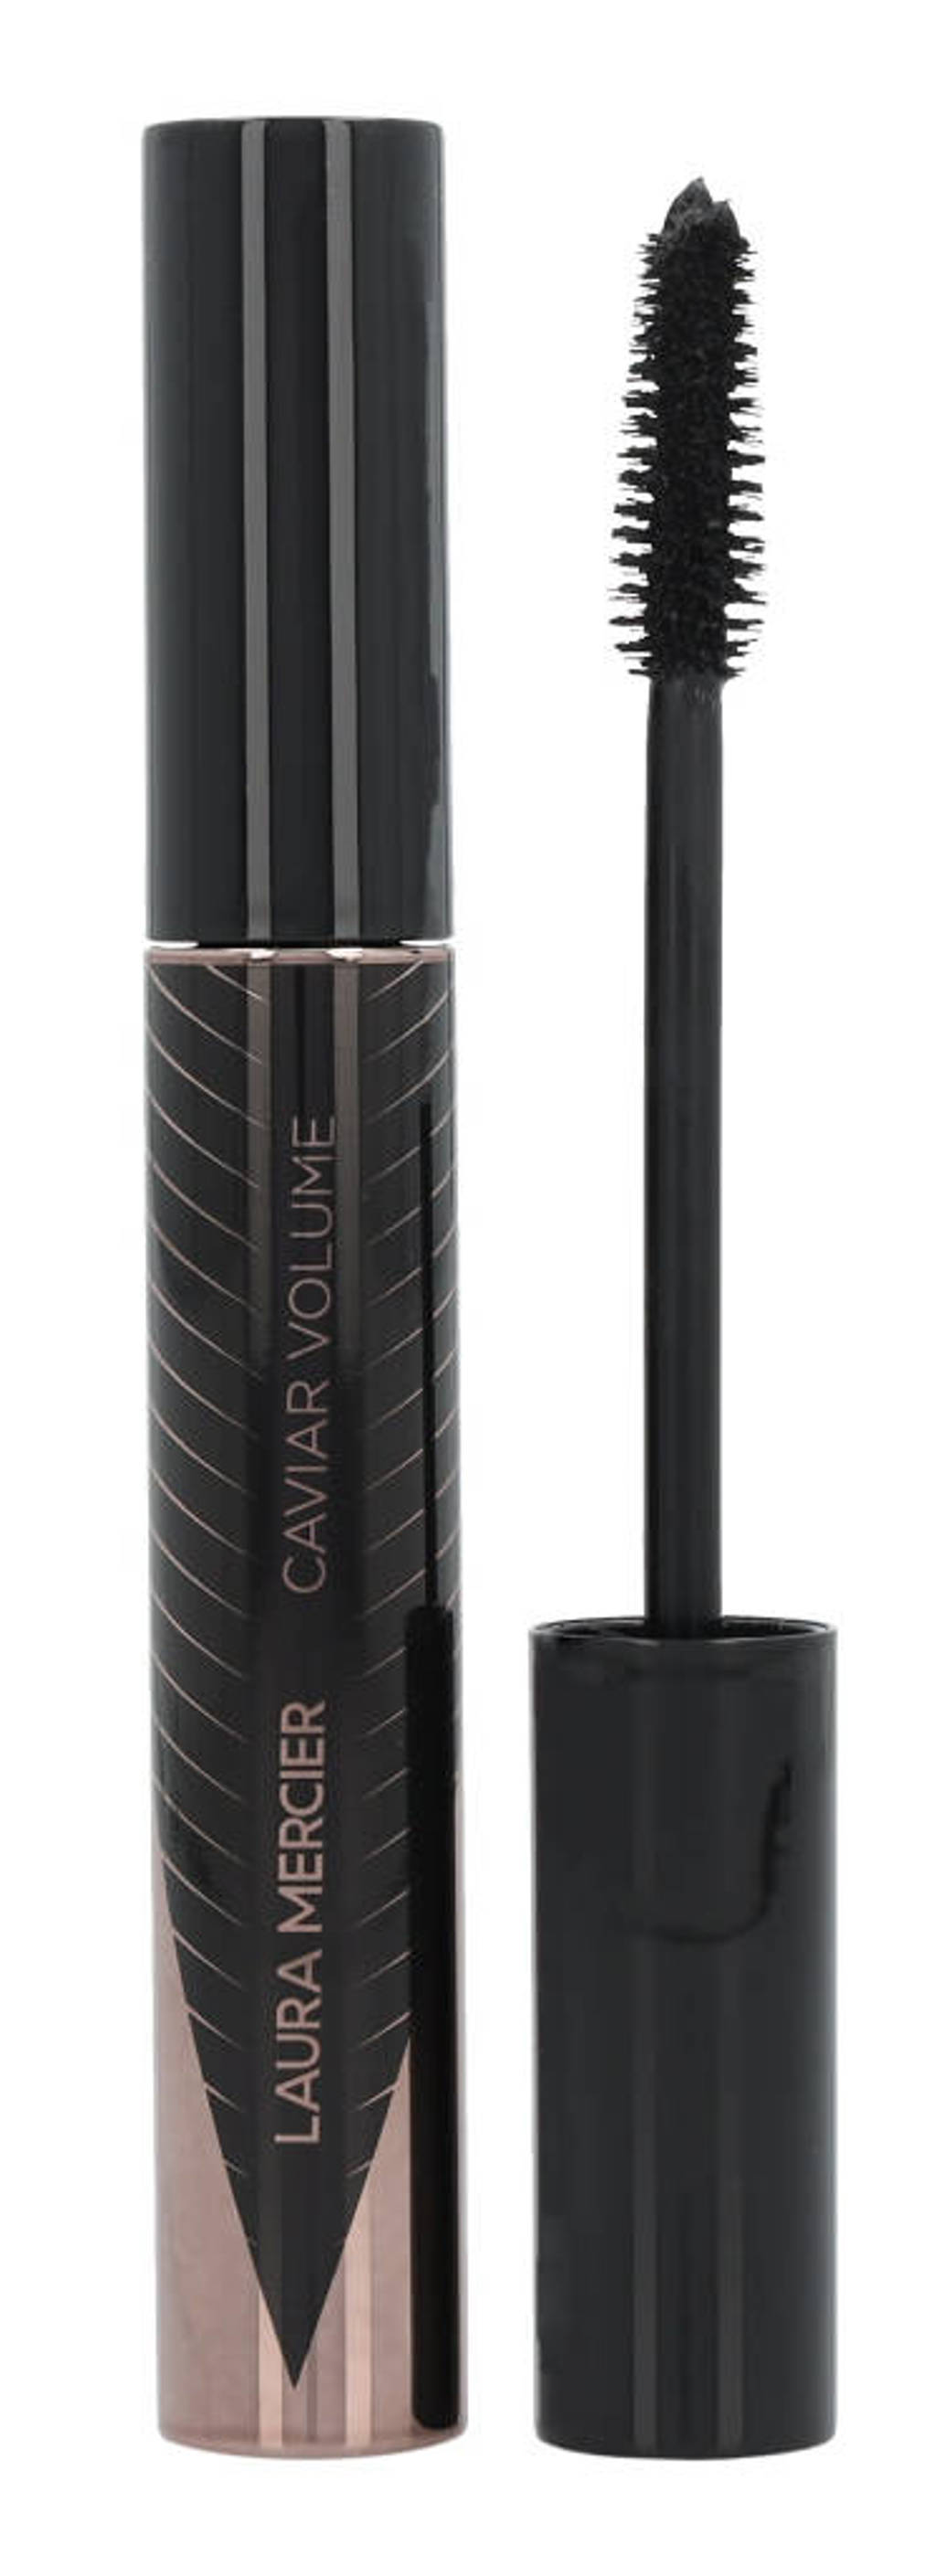 Laura Mercier Caviar Volume Panoramic mascara - Black Karat